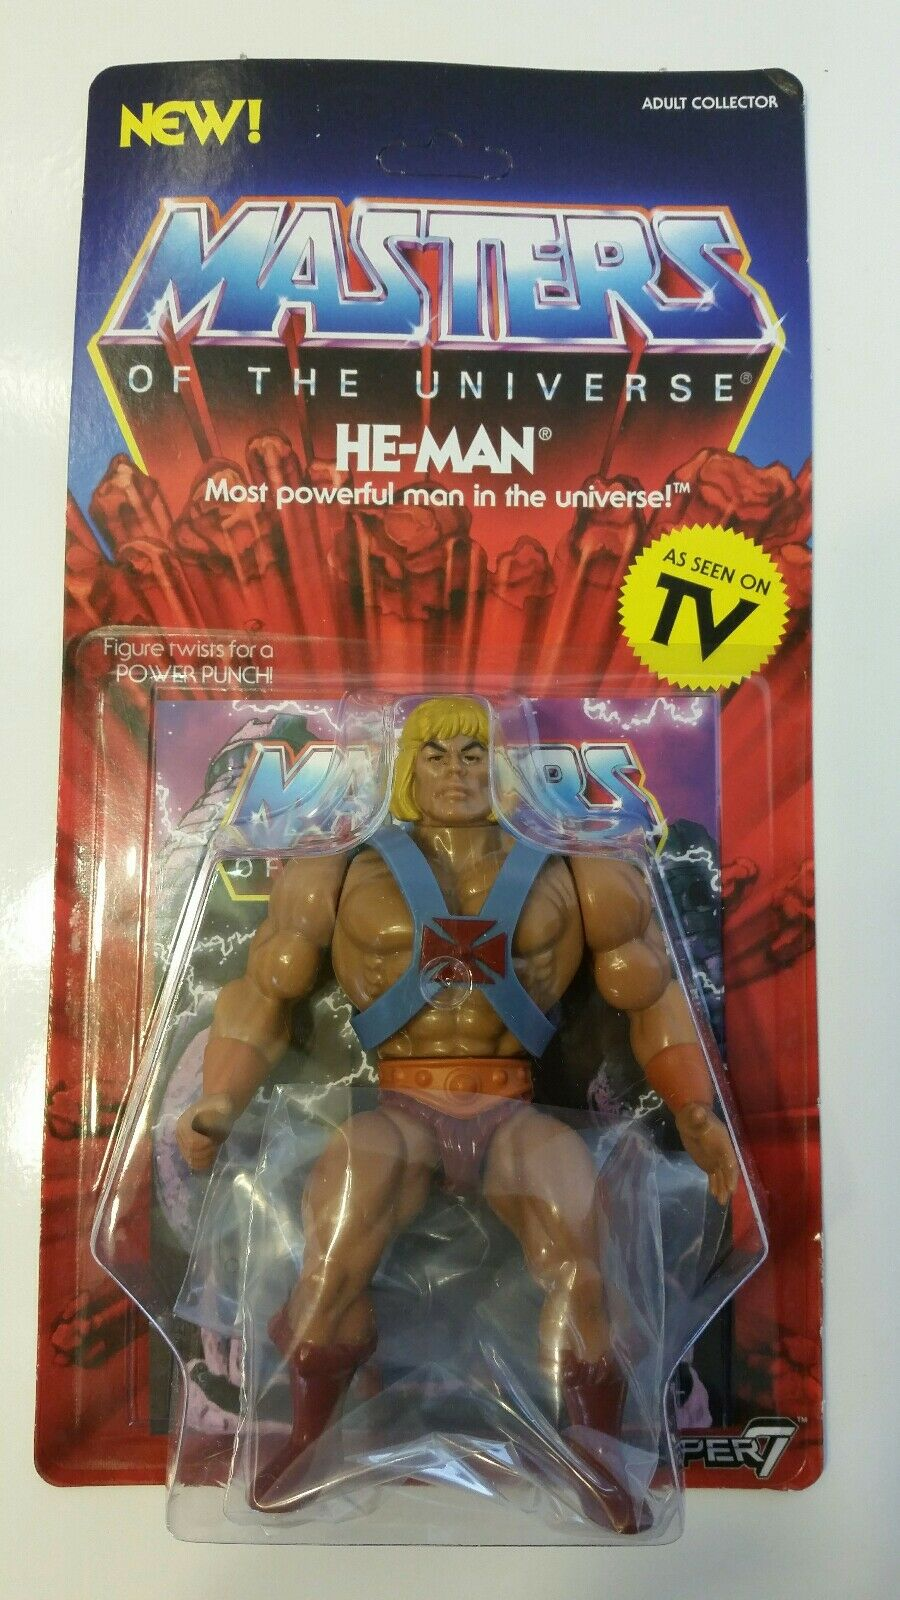 SUPER 7 'VINTAGE COLLECTION' 5.5  HE-MAN Action Figure 2018 - Brand New  Sealed